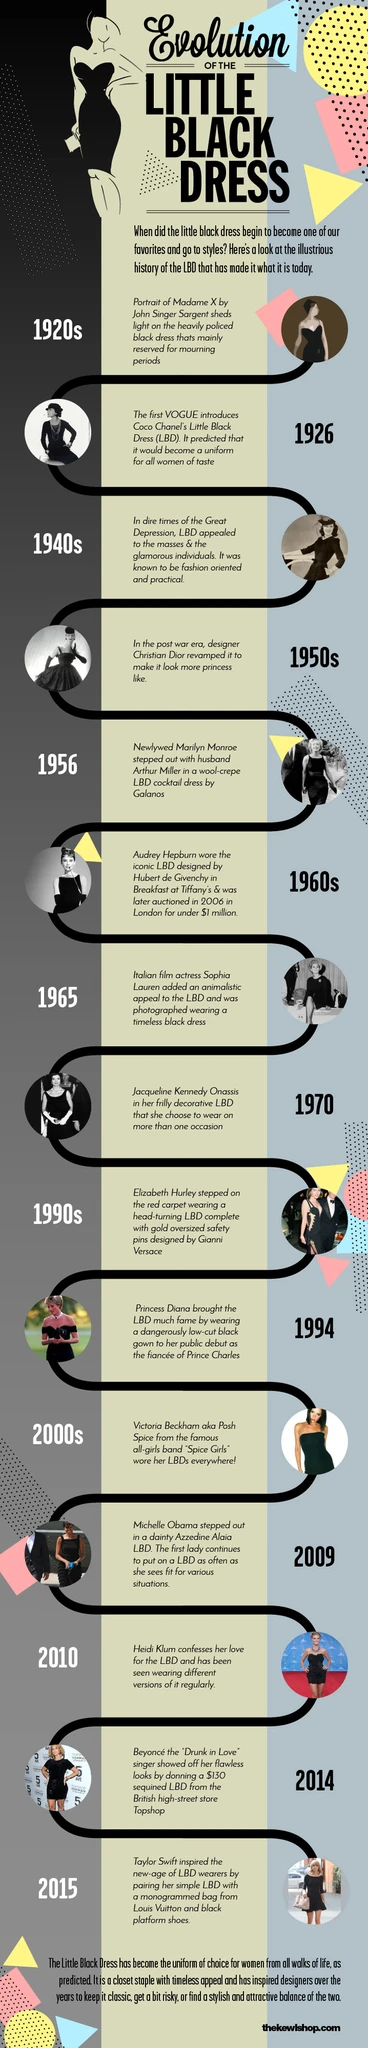 Infographic - Evolution of little black dresses